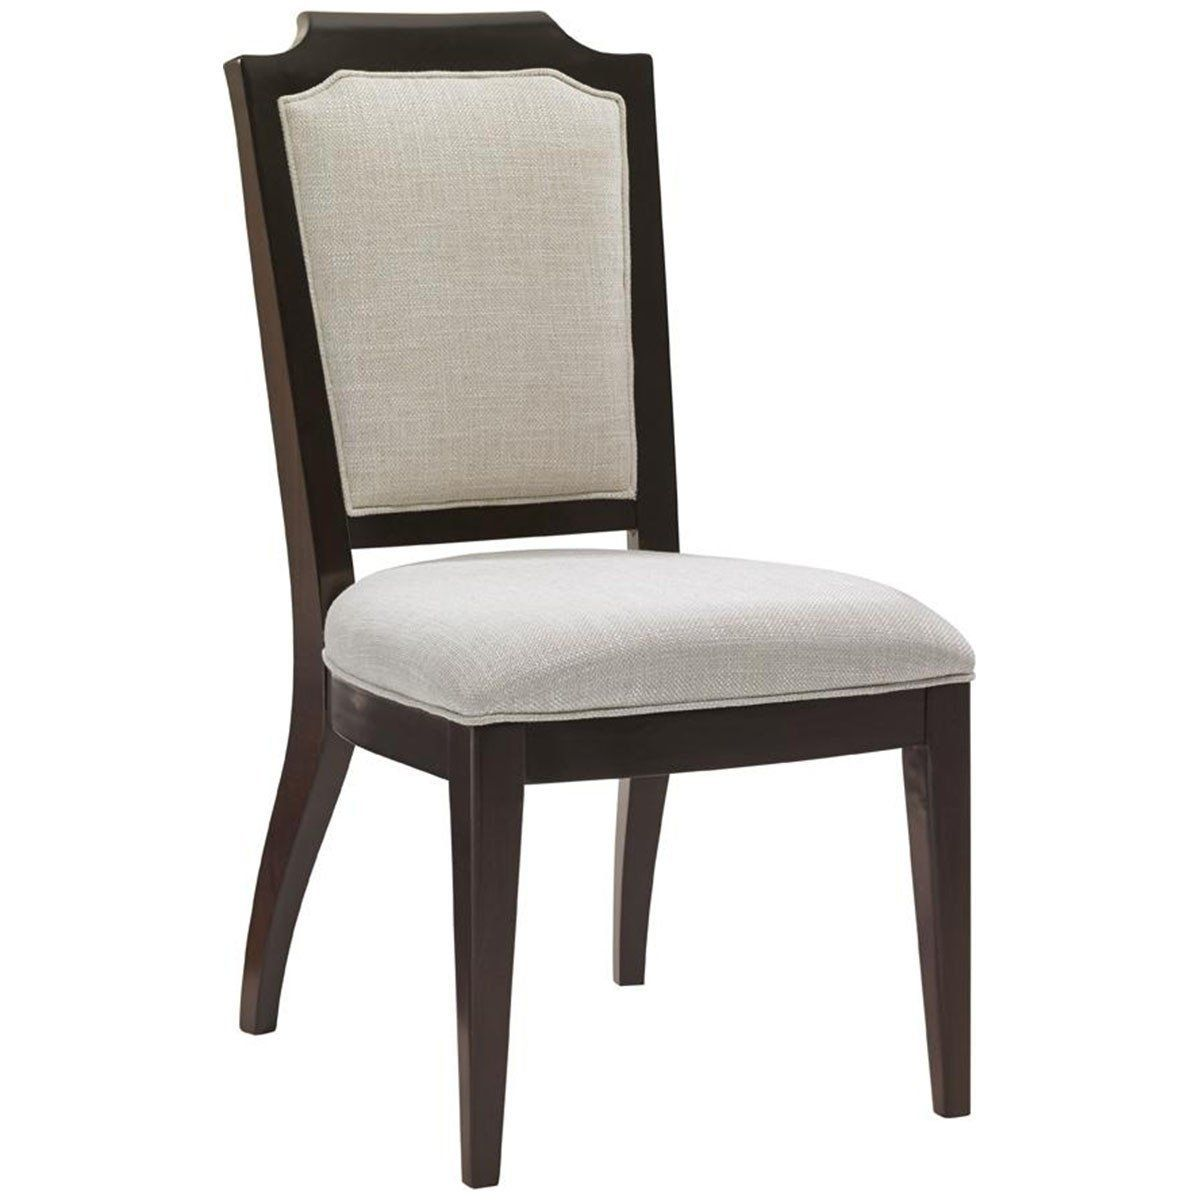 Lexington Kengsington Place Candace Side Chair Set Of 2 Lexington Furniture Upholstered Side Chair Side Chairs Dining